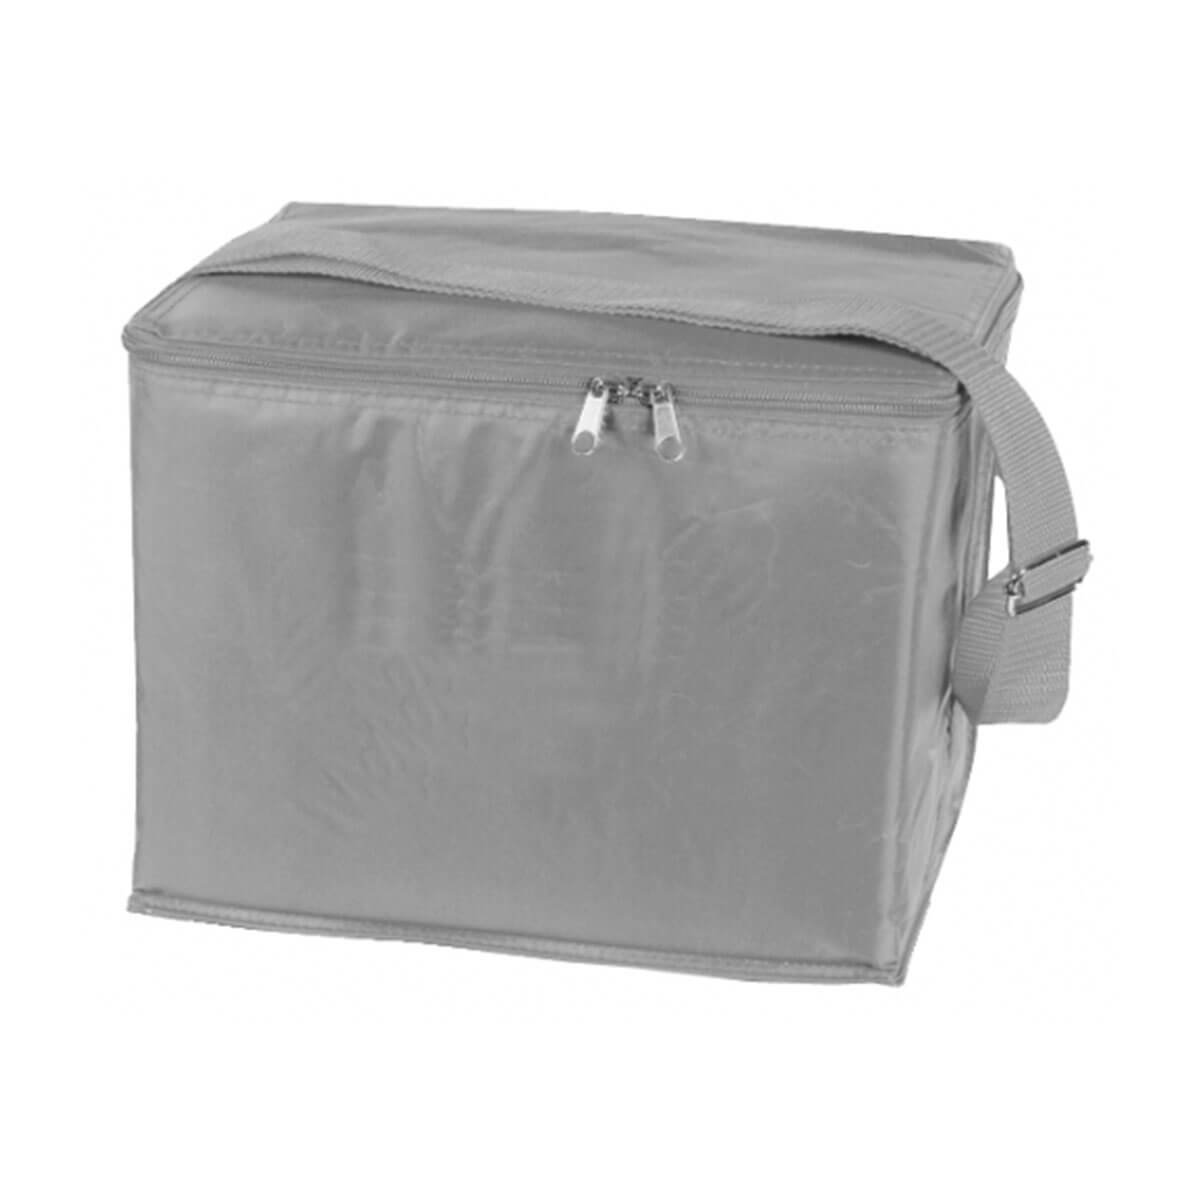 6 Can Cooler Bag-Silver